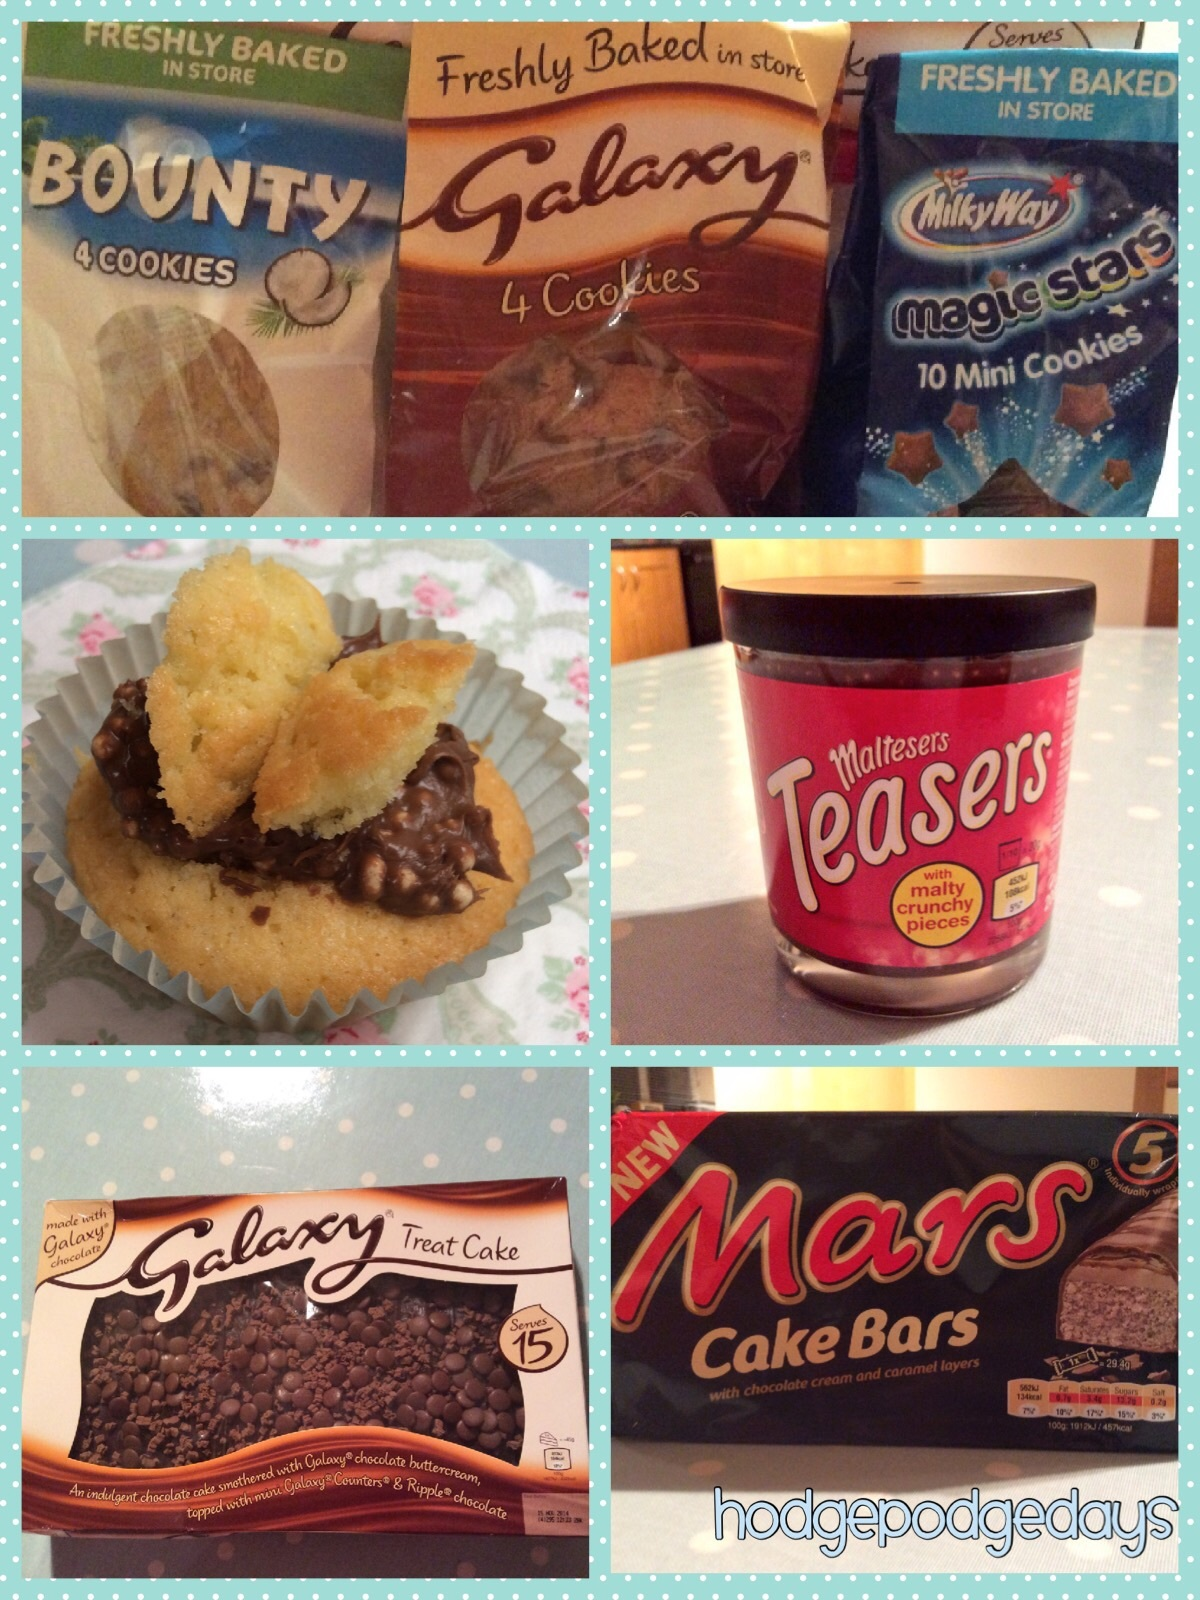 Malteser Spread & other MARS Munchies